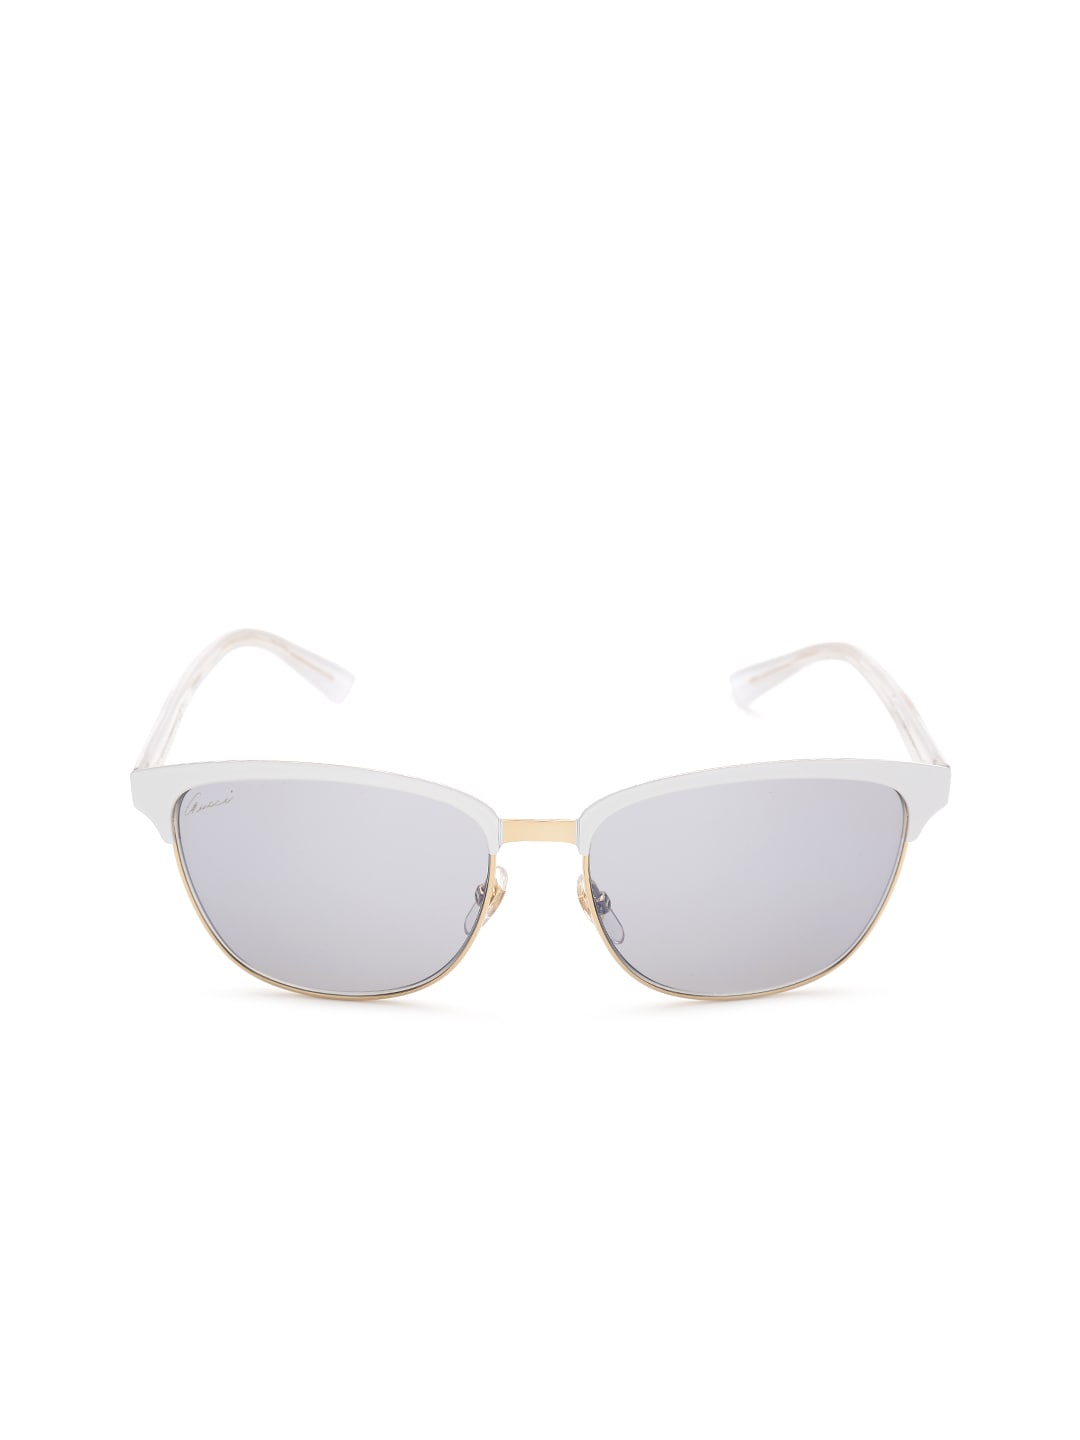 Gucci Mirrored Sunglasses  gucci sunglasses gucci sunglasses online in india